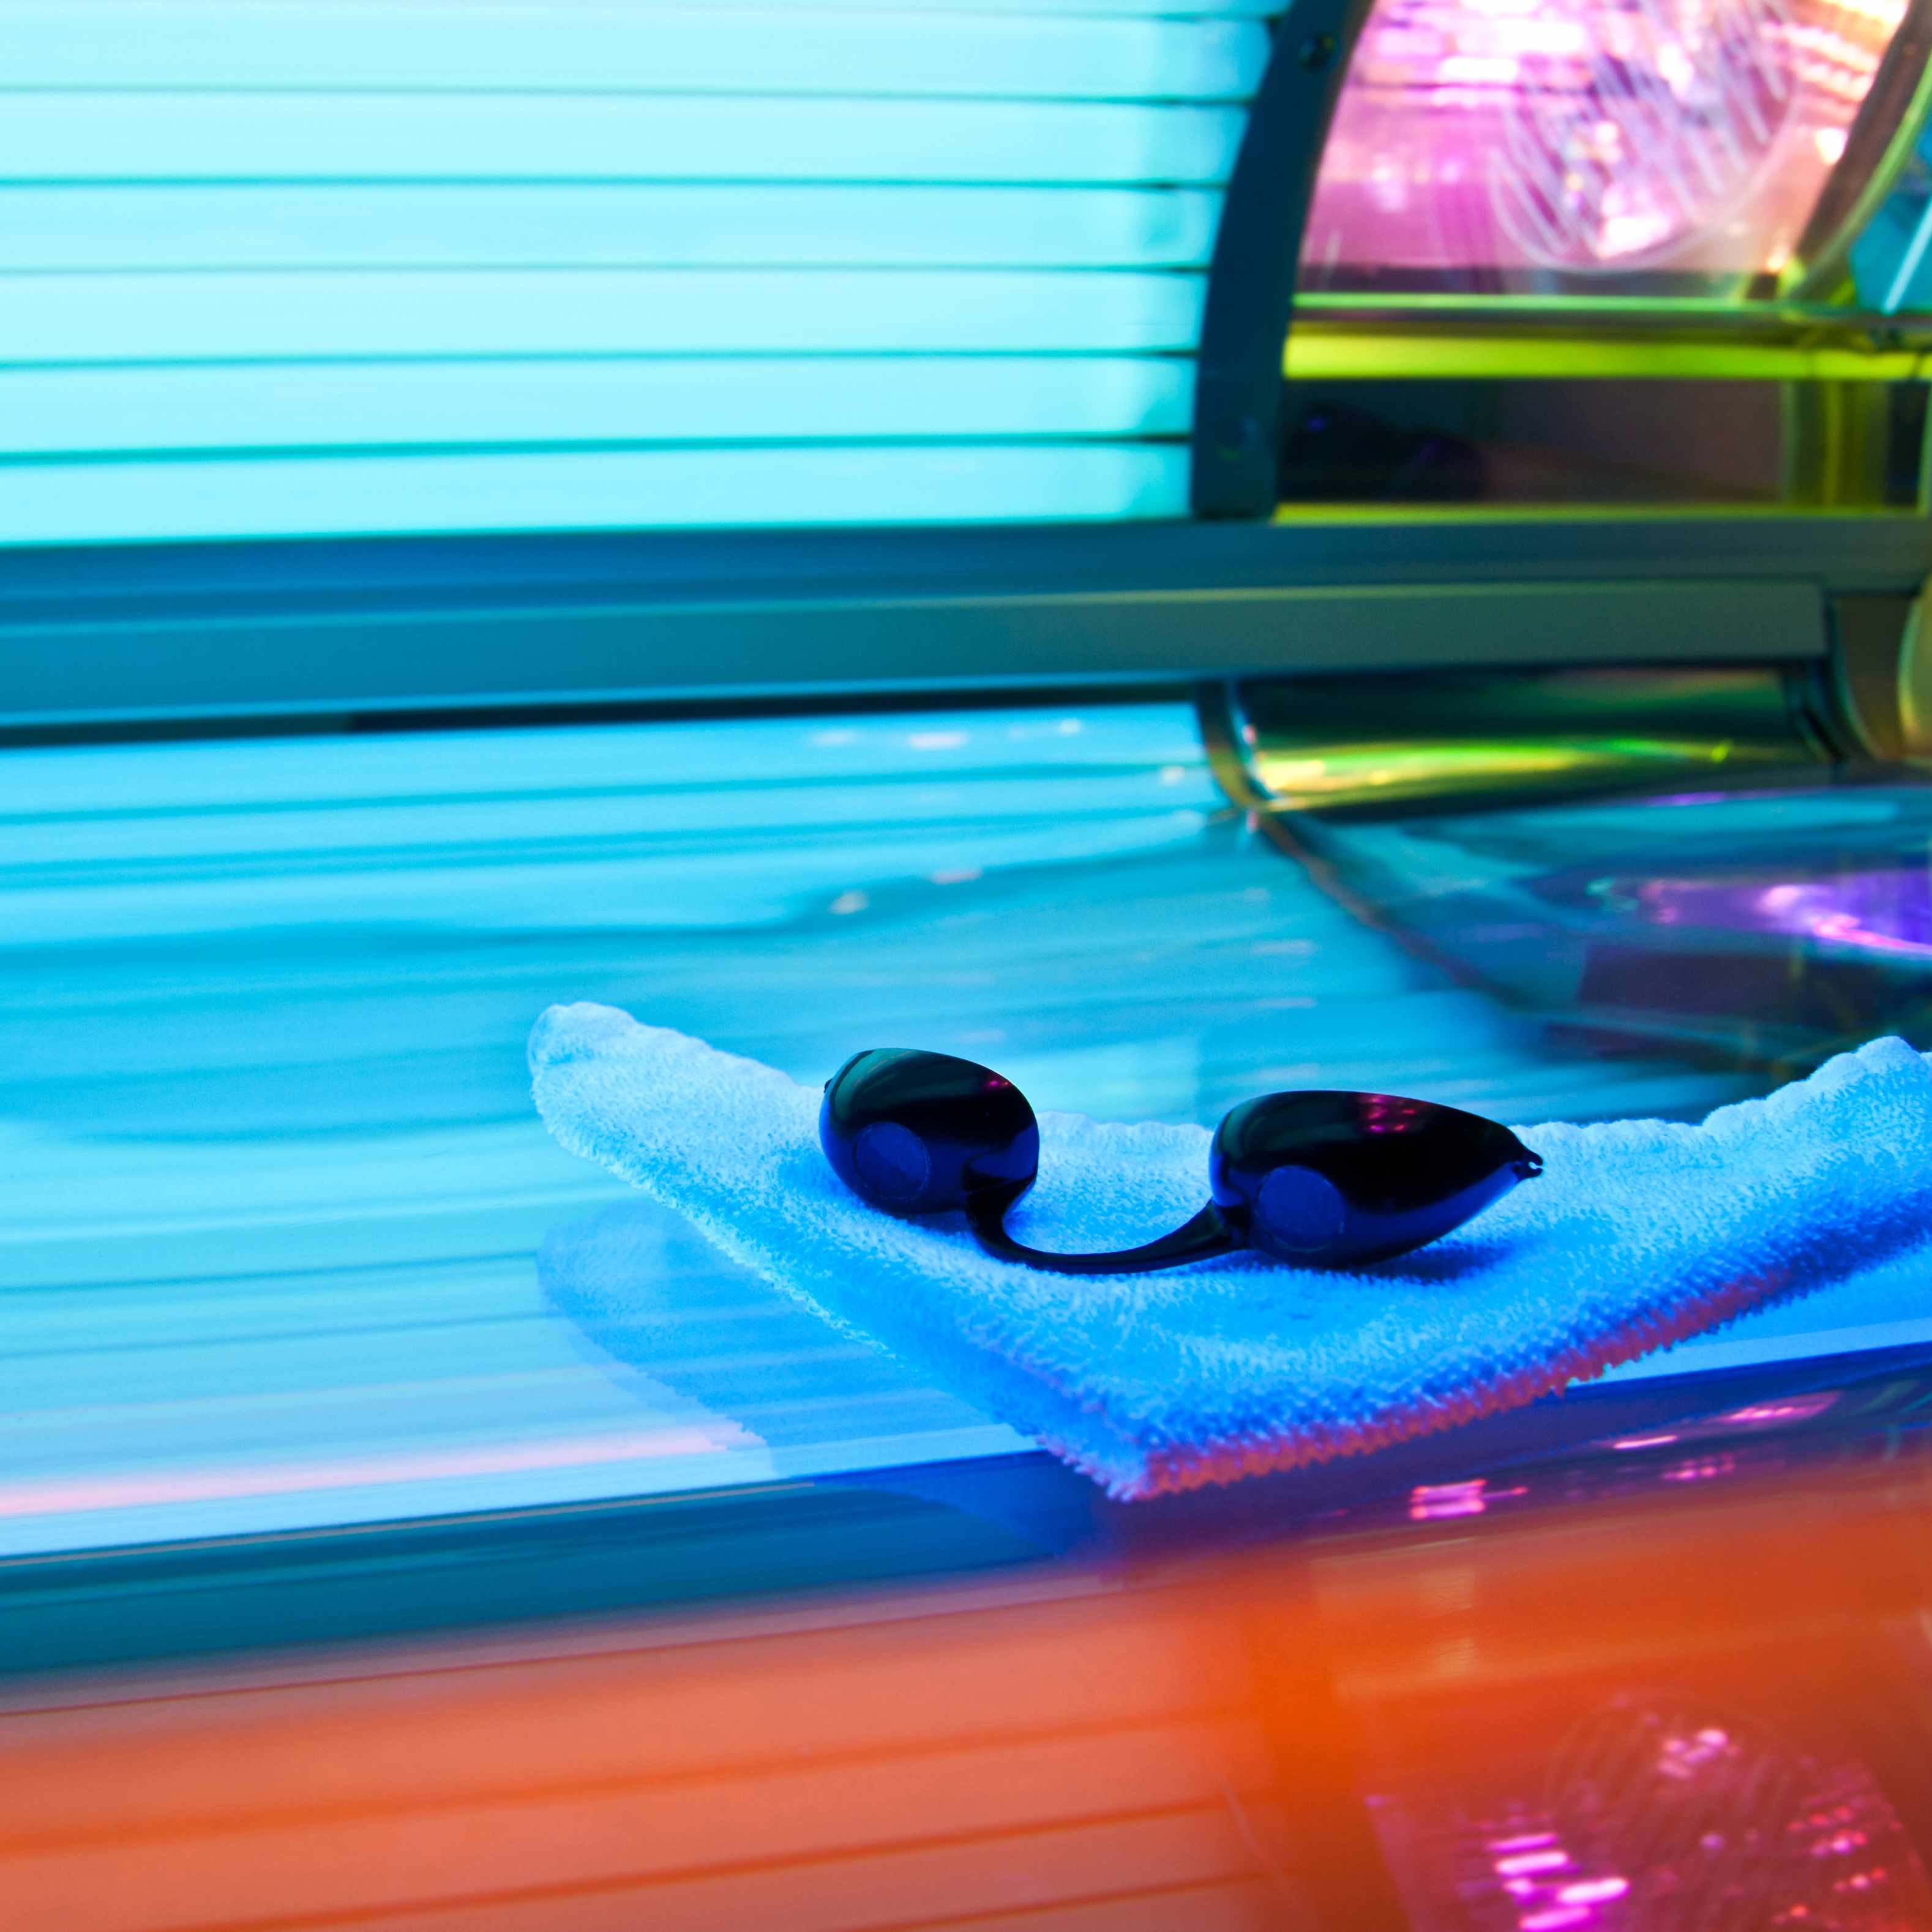 an open tanning bed, with a towel and protective goggles